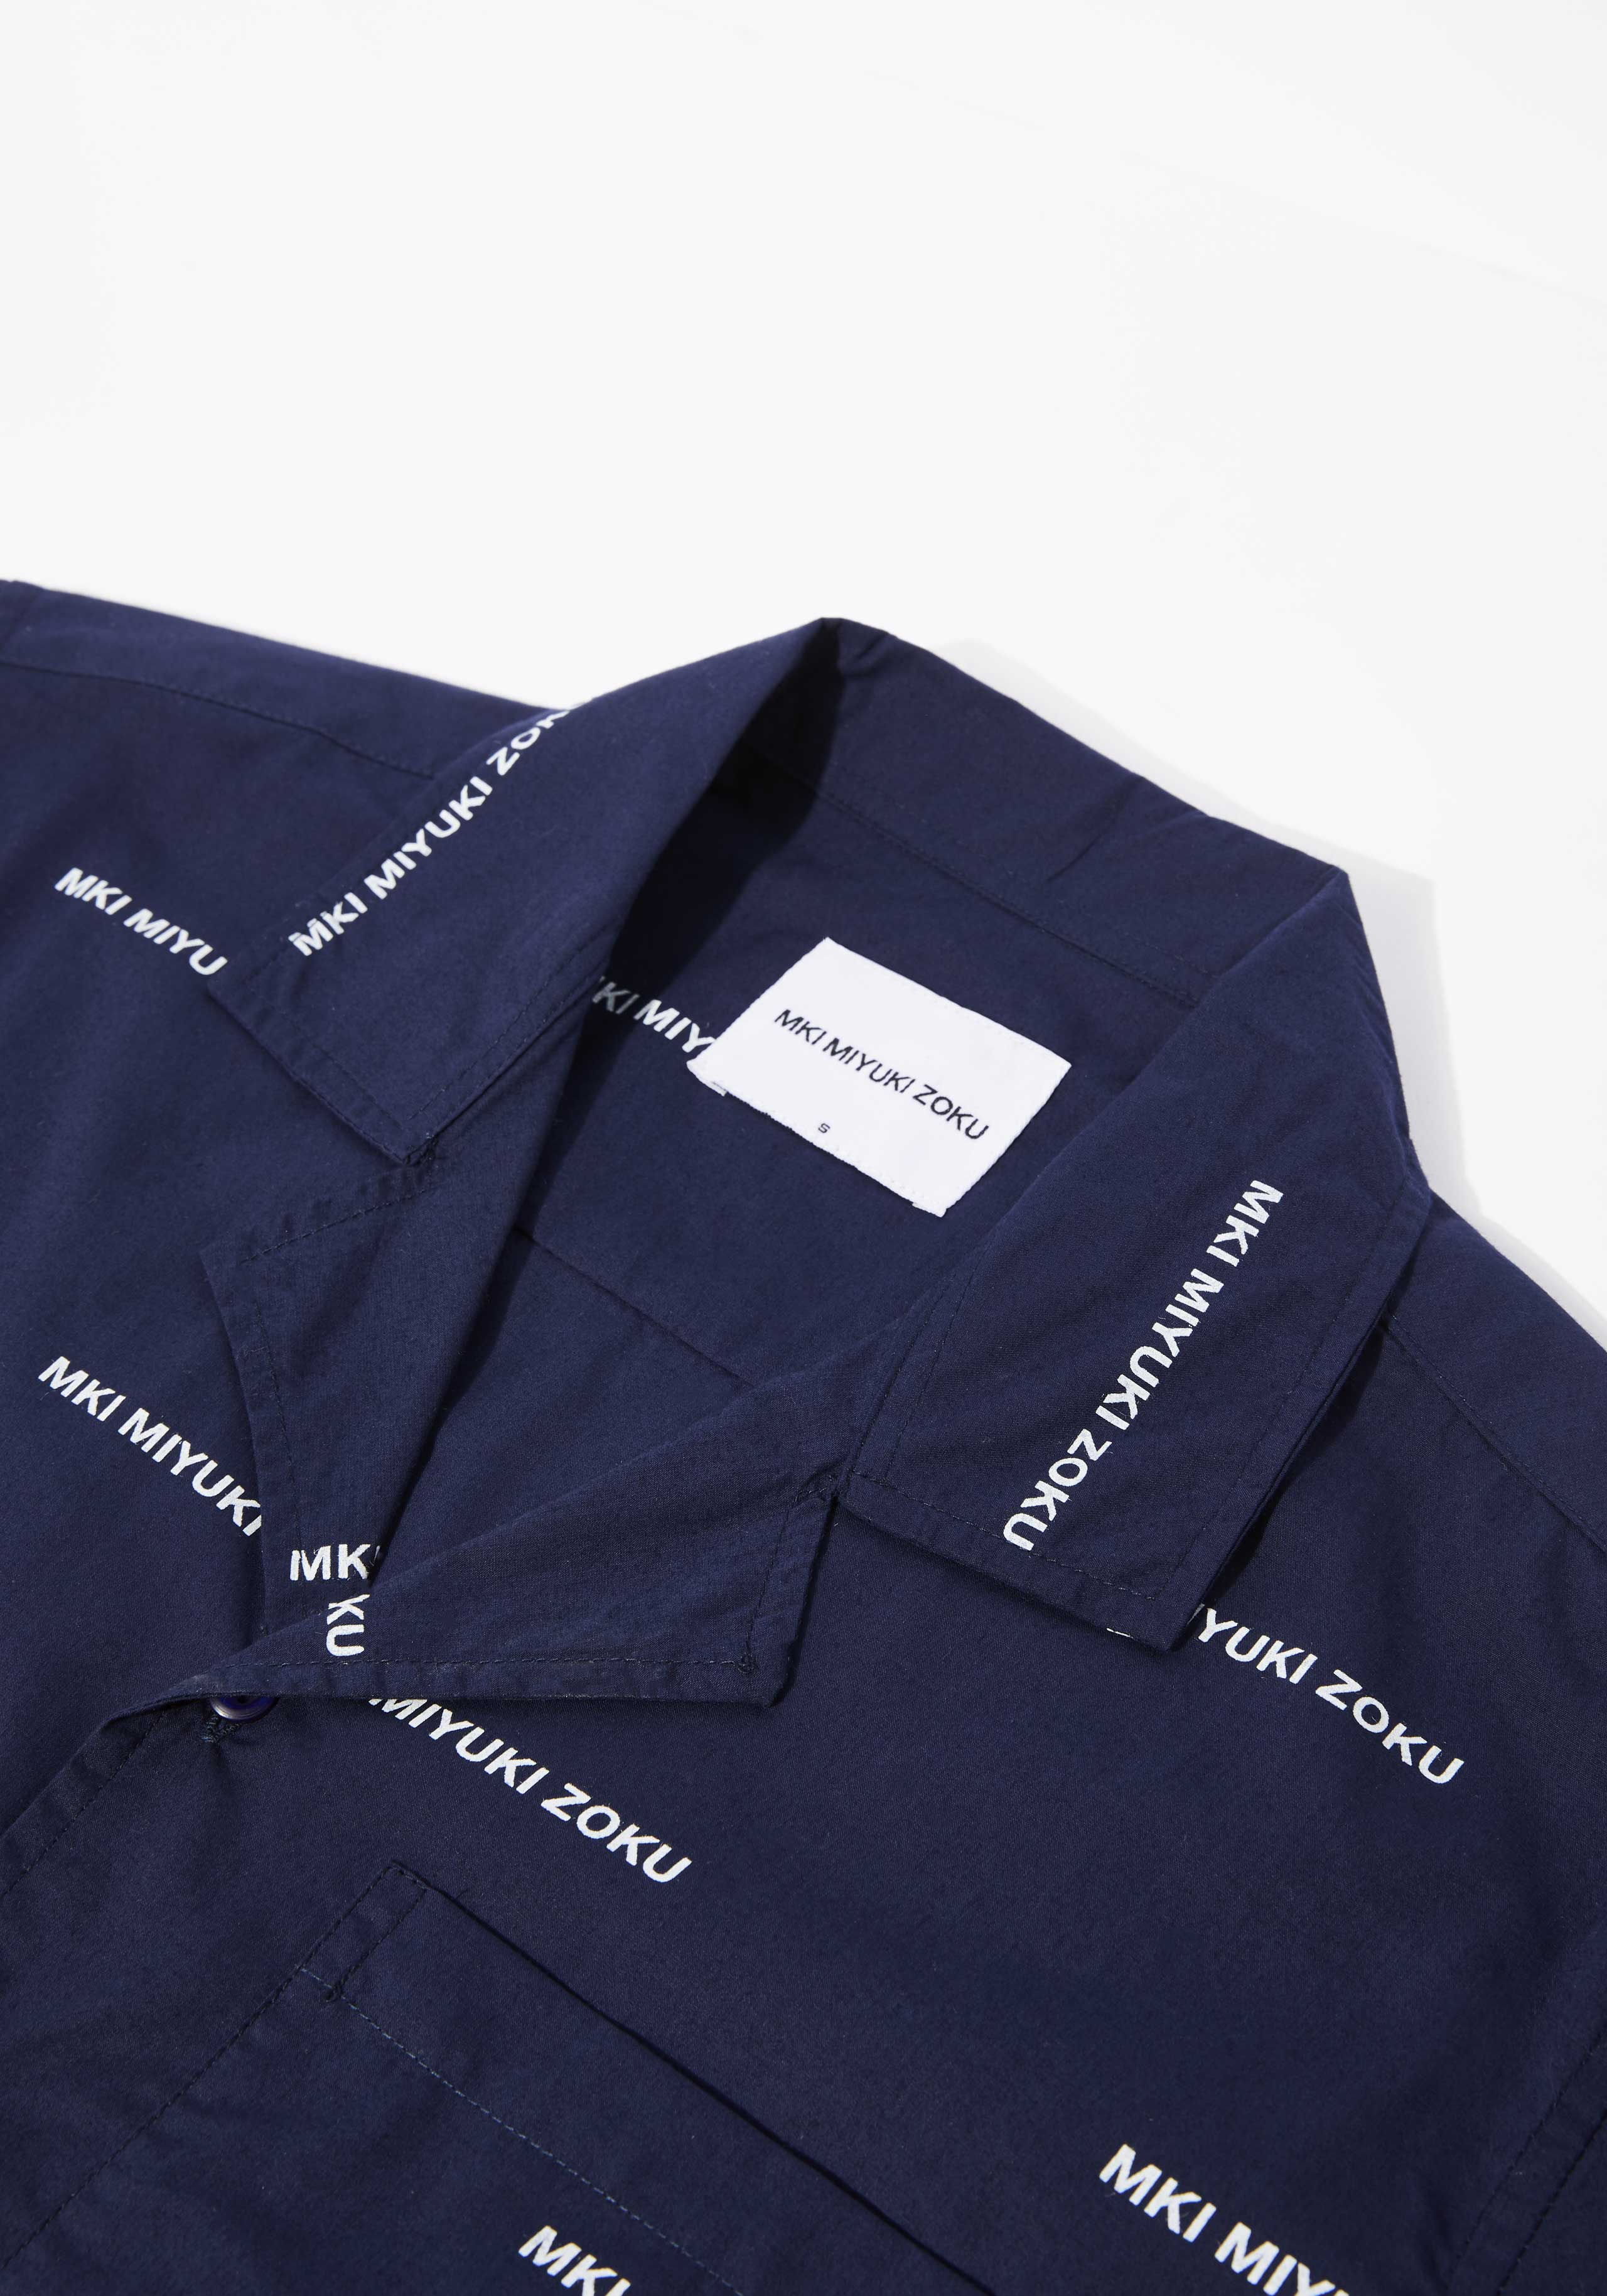 mki logo vacation shirt 3